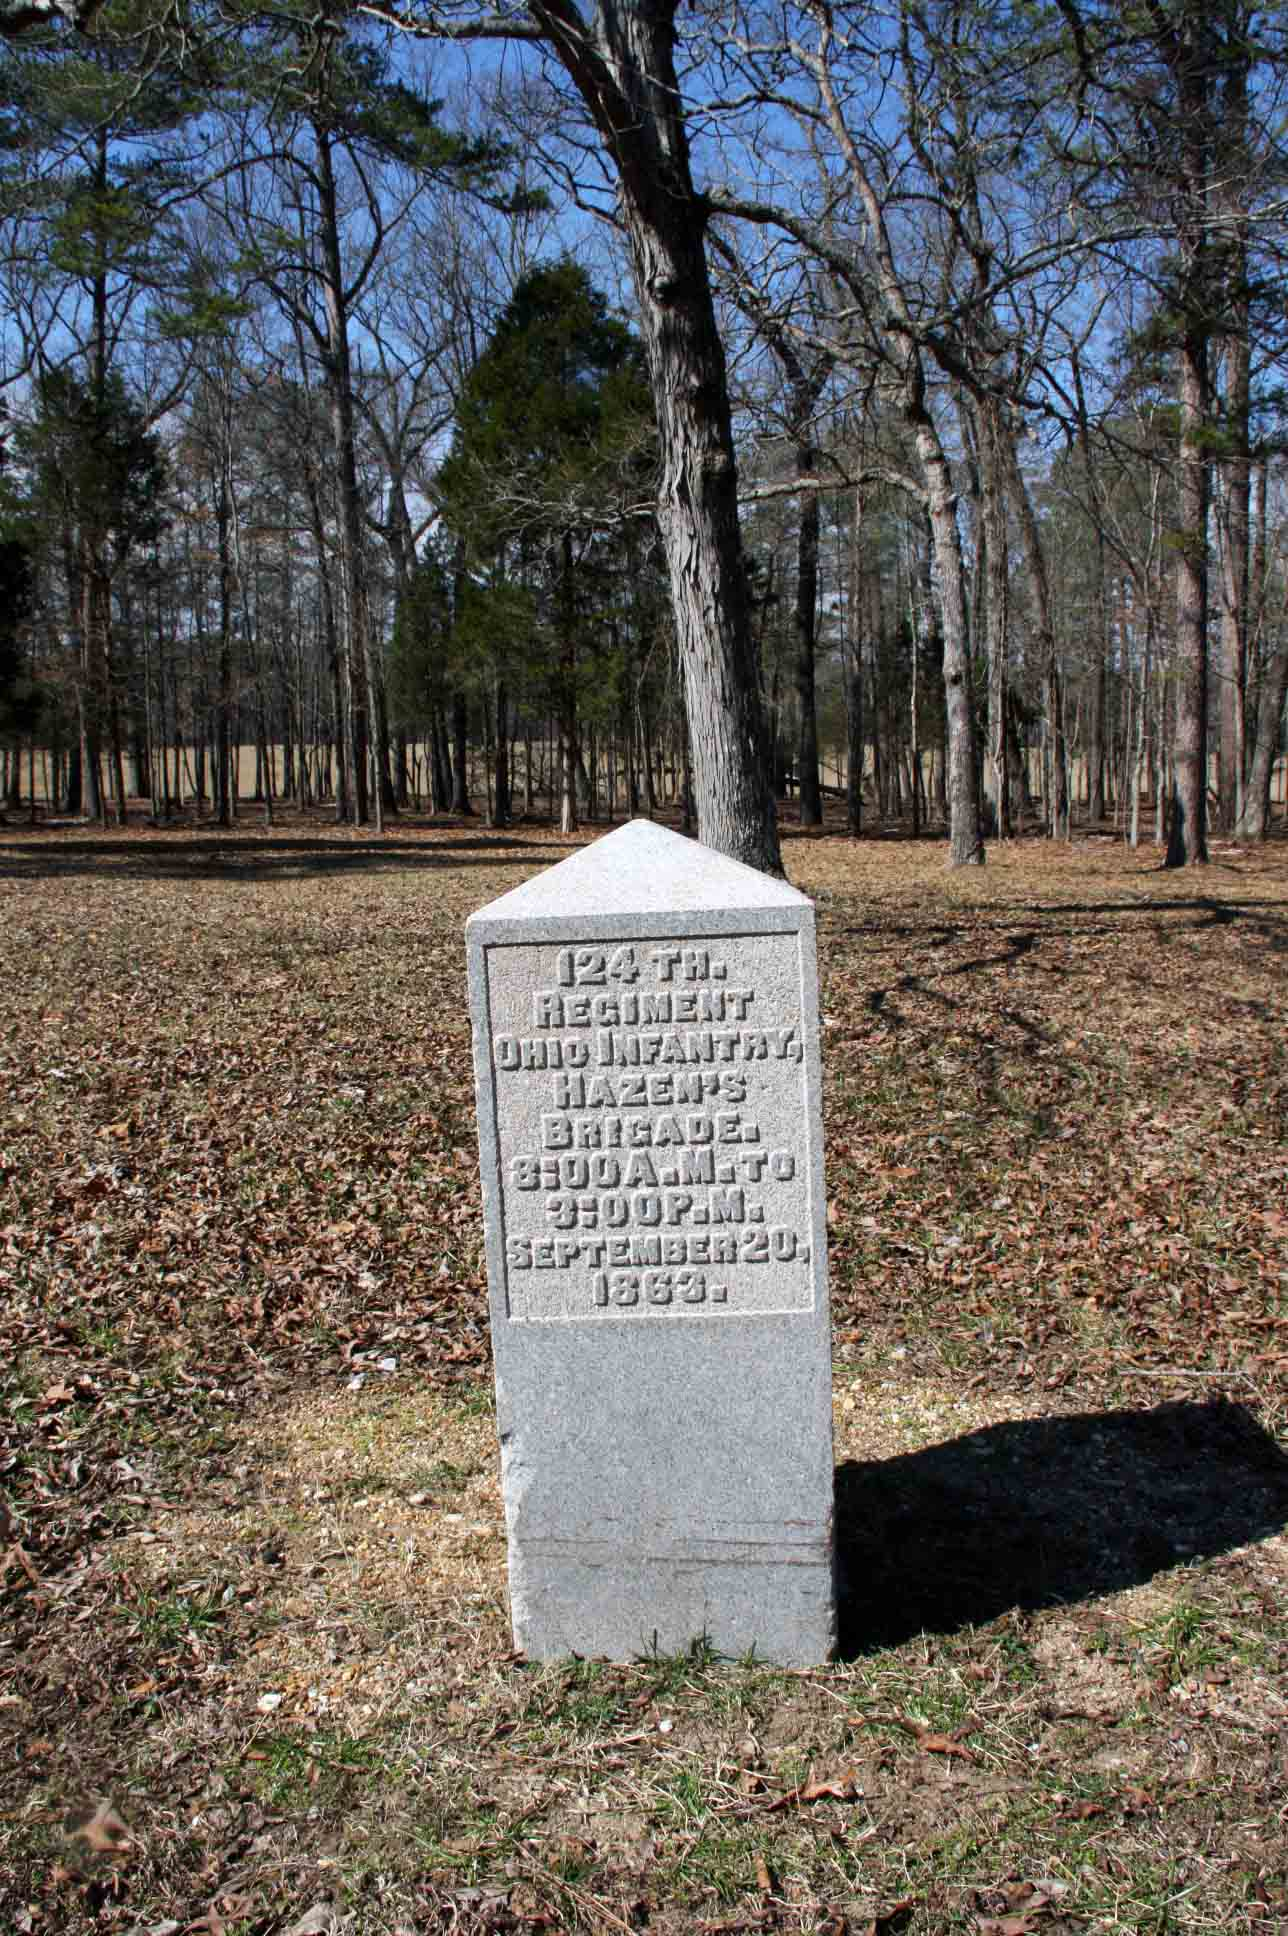 124th Ohio Infantry Regiment Marker, click photo to enlarge.